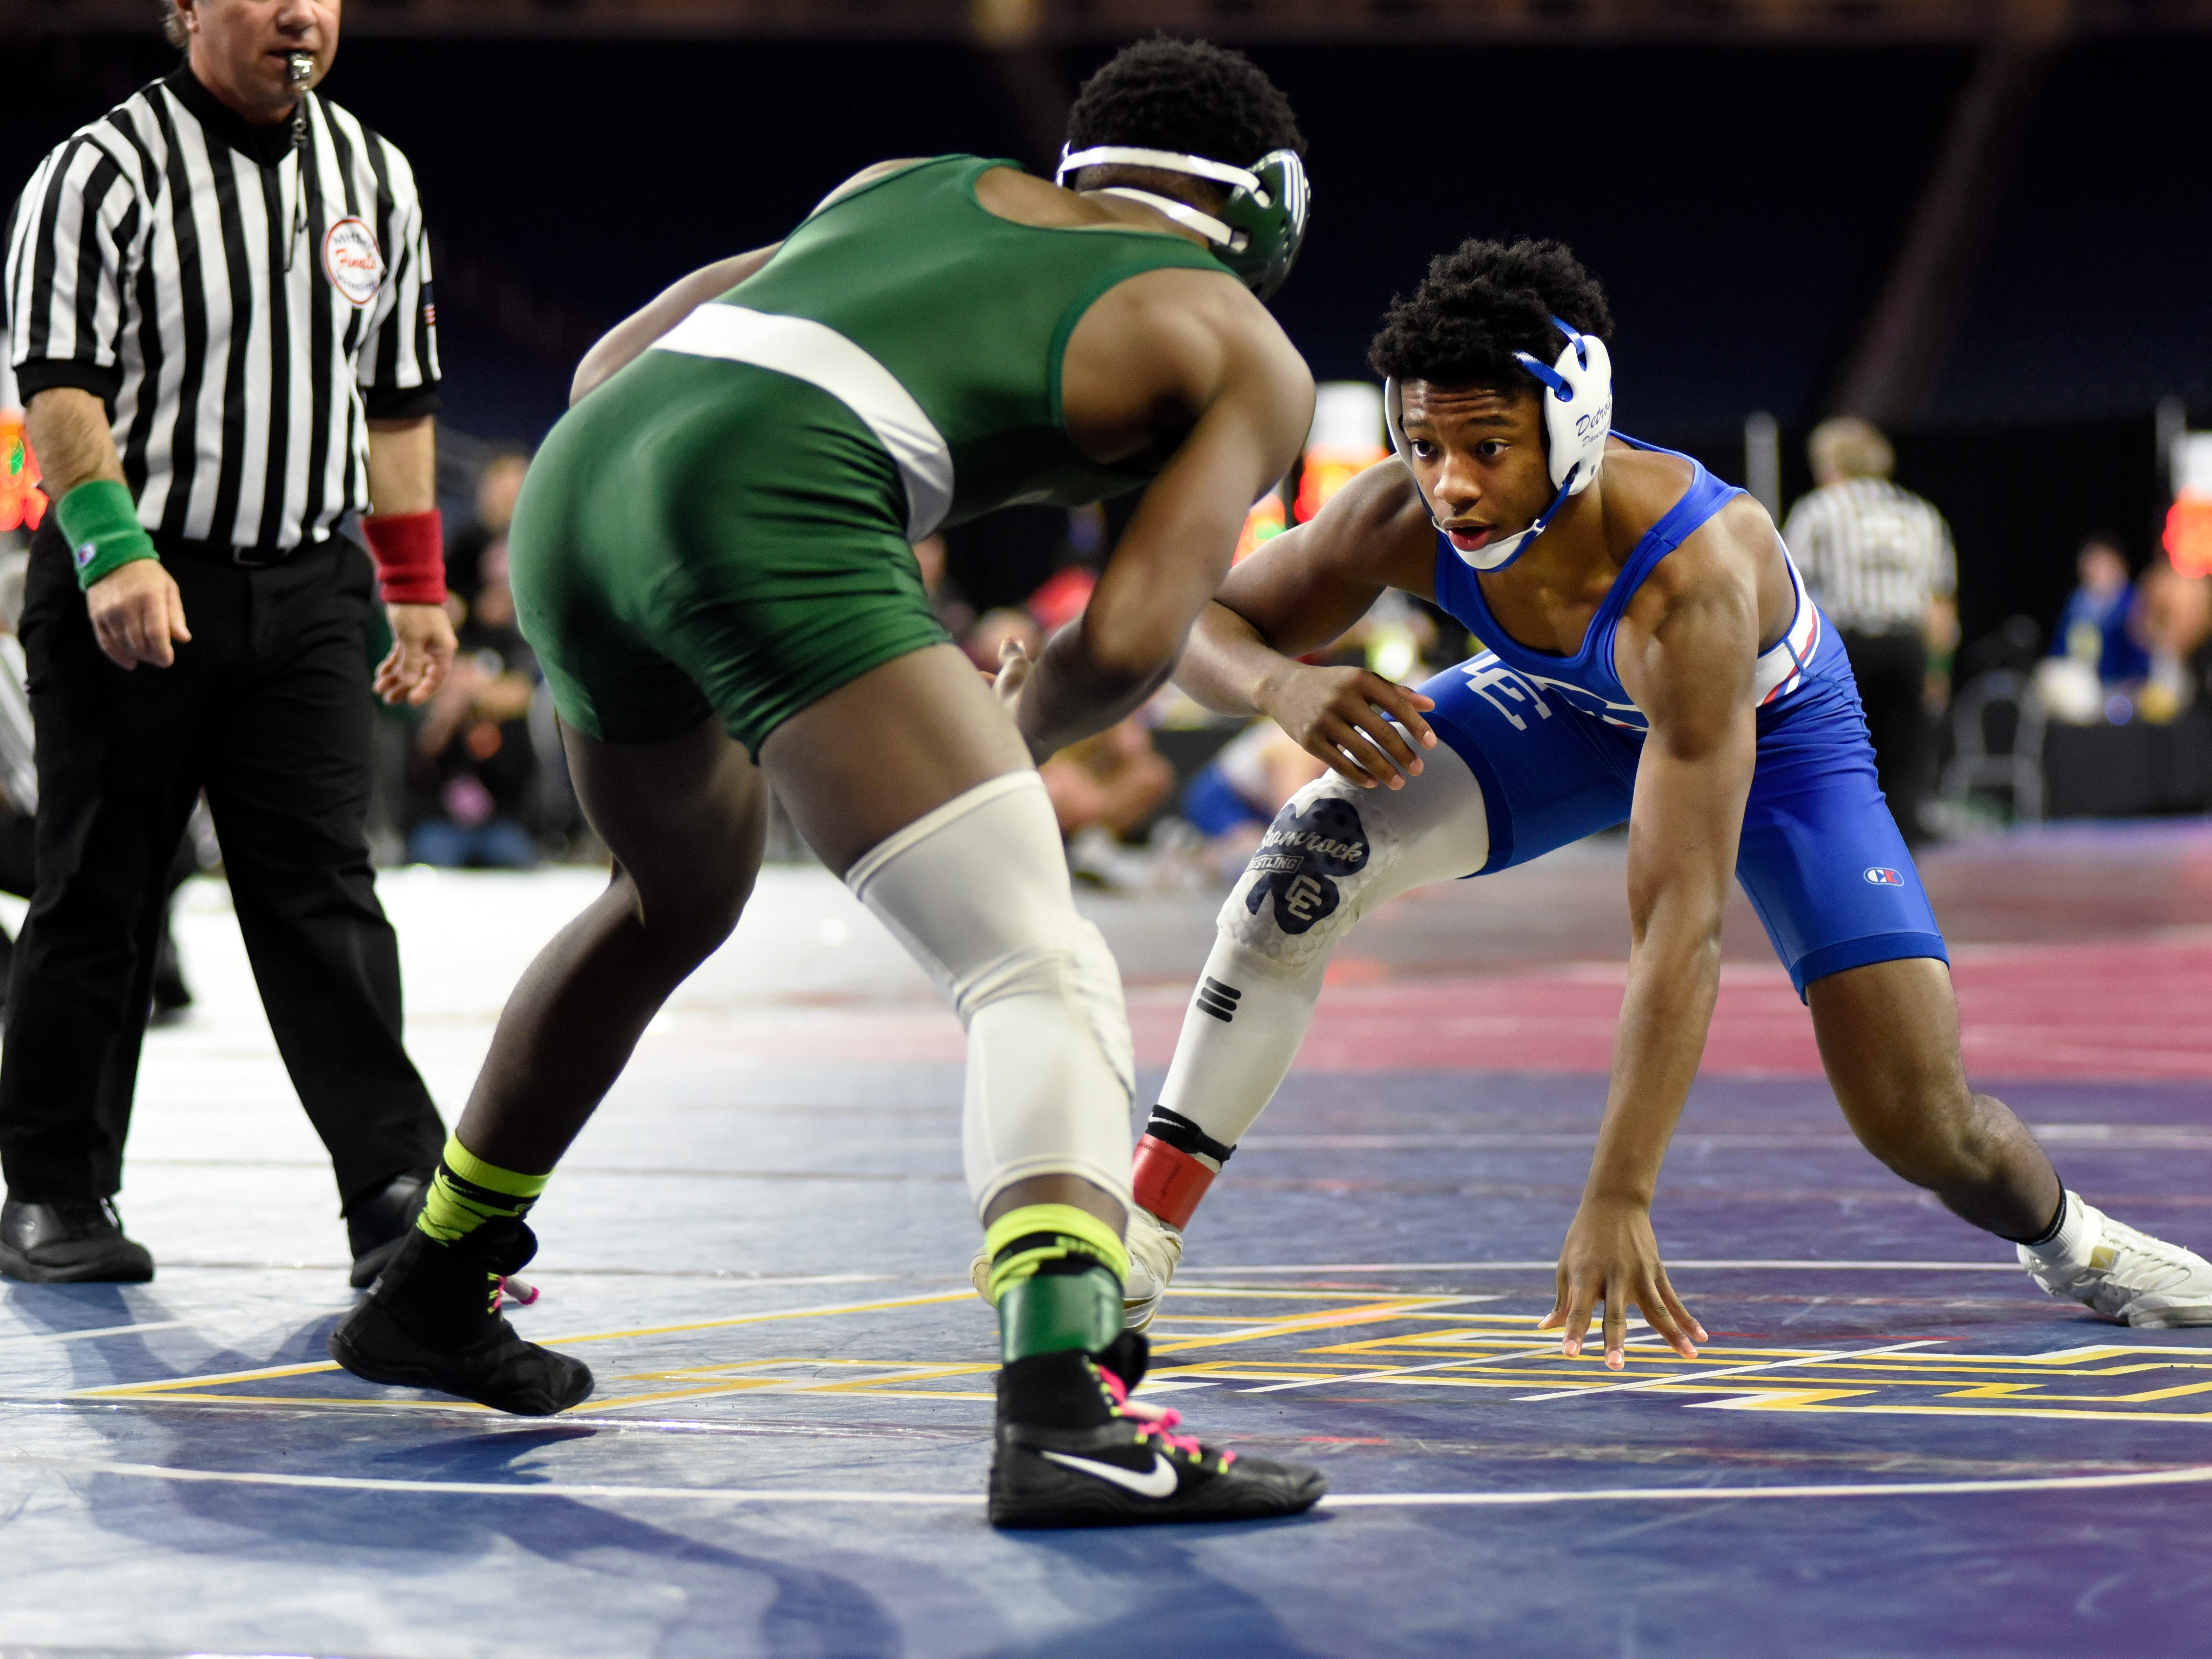 Kevon Davenport of Detroit Catholic Central, right, wrestles Damon Dunbar of Birmingham Groves in the 145 pound weight class semifinal. Davenport won by major decision over Dunbar.